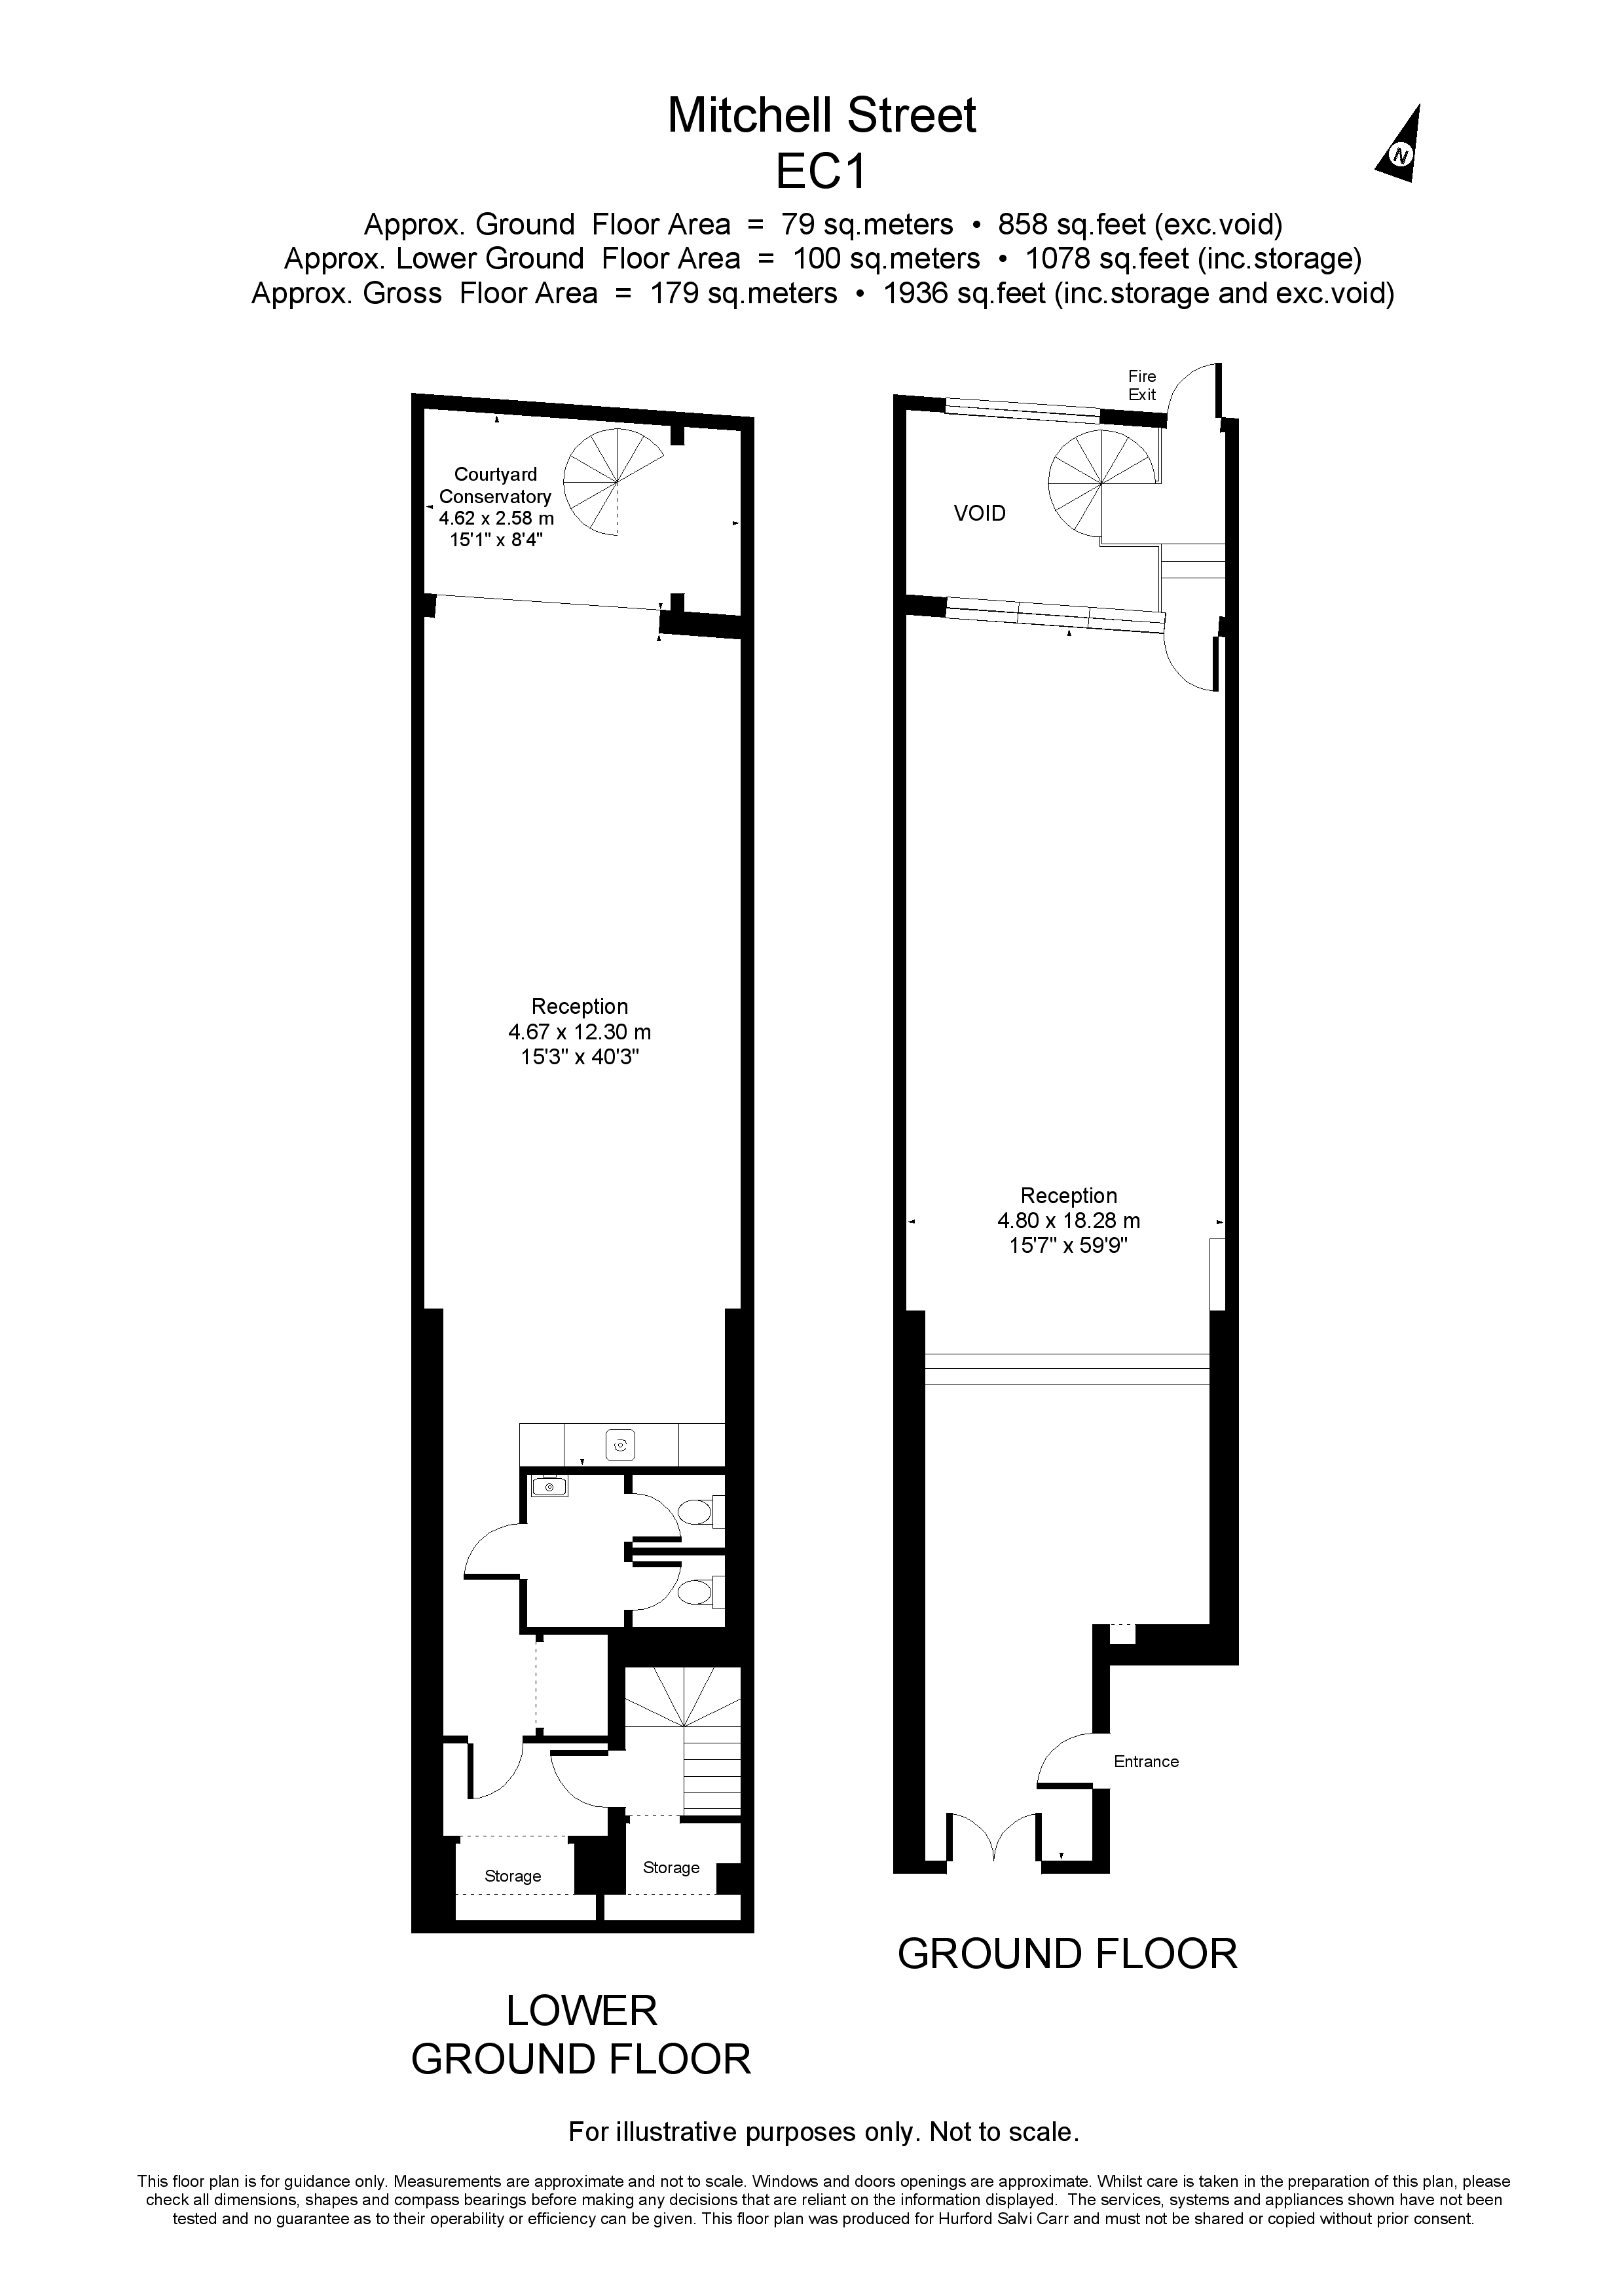 Mitchell Street, Clerkenwell, London, EC1V floorplan